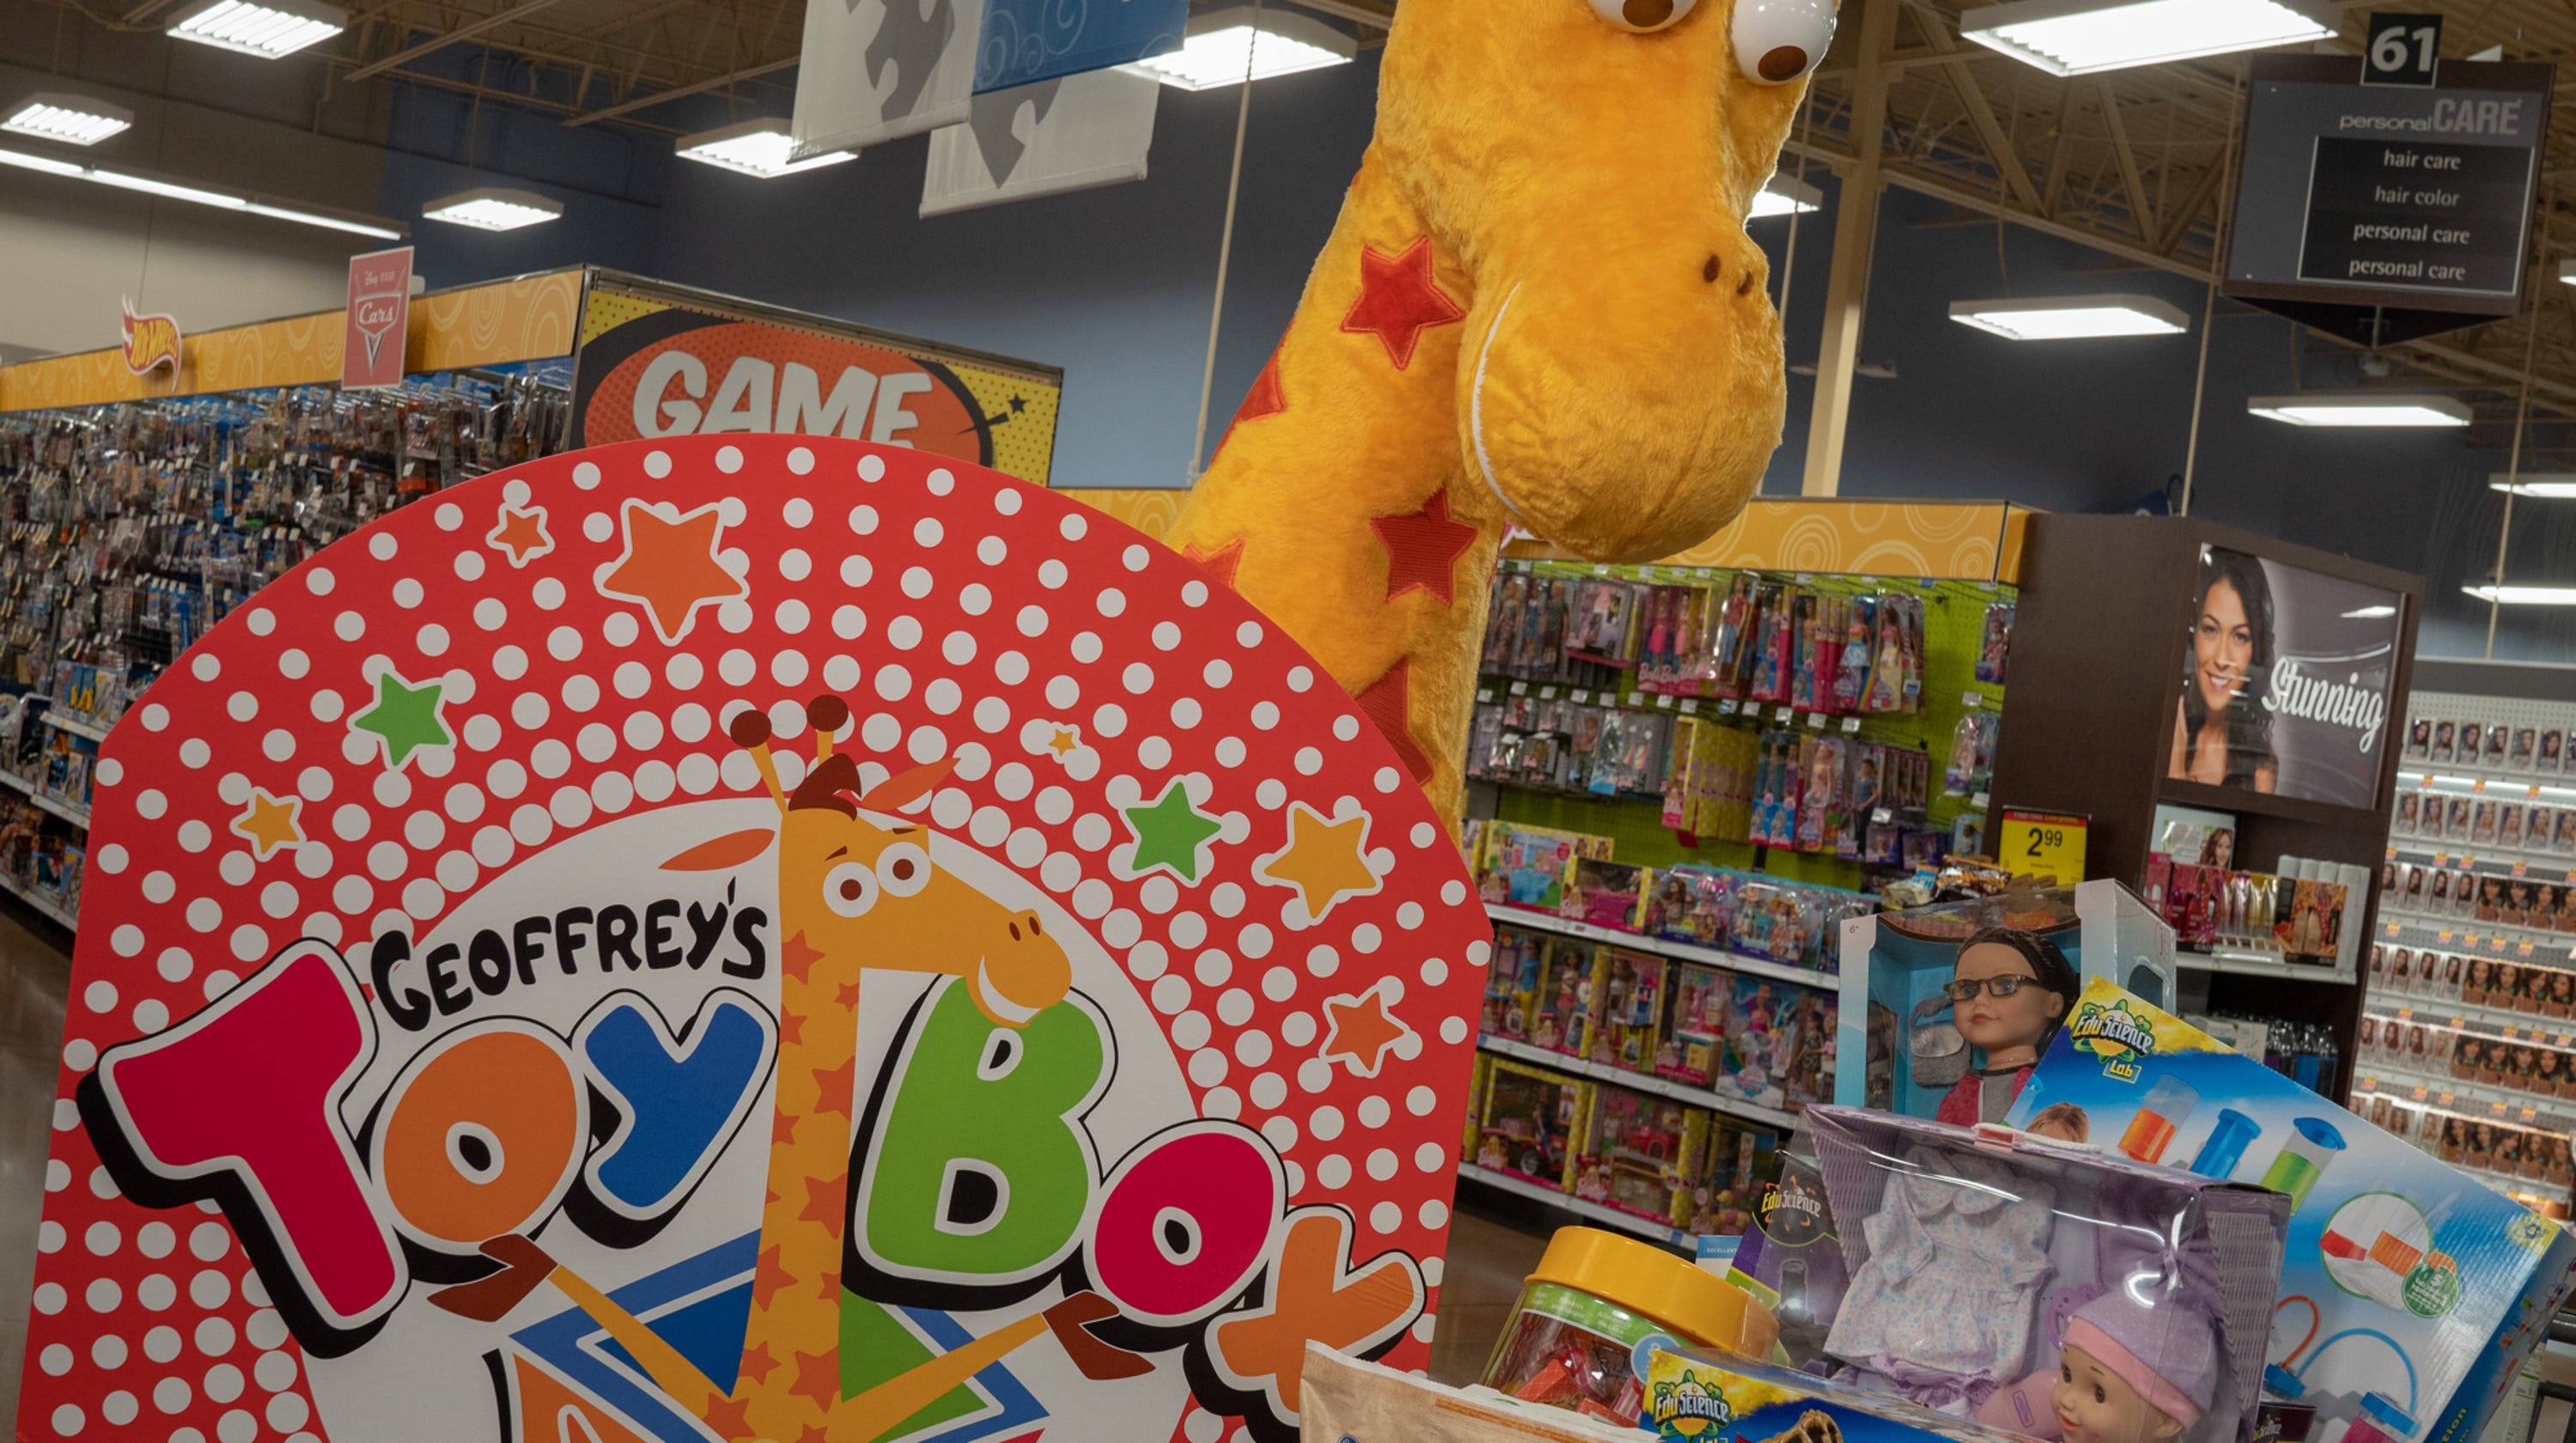 Toys From Kroger : Holiday shopping geoffrey s toy box opening within kroger